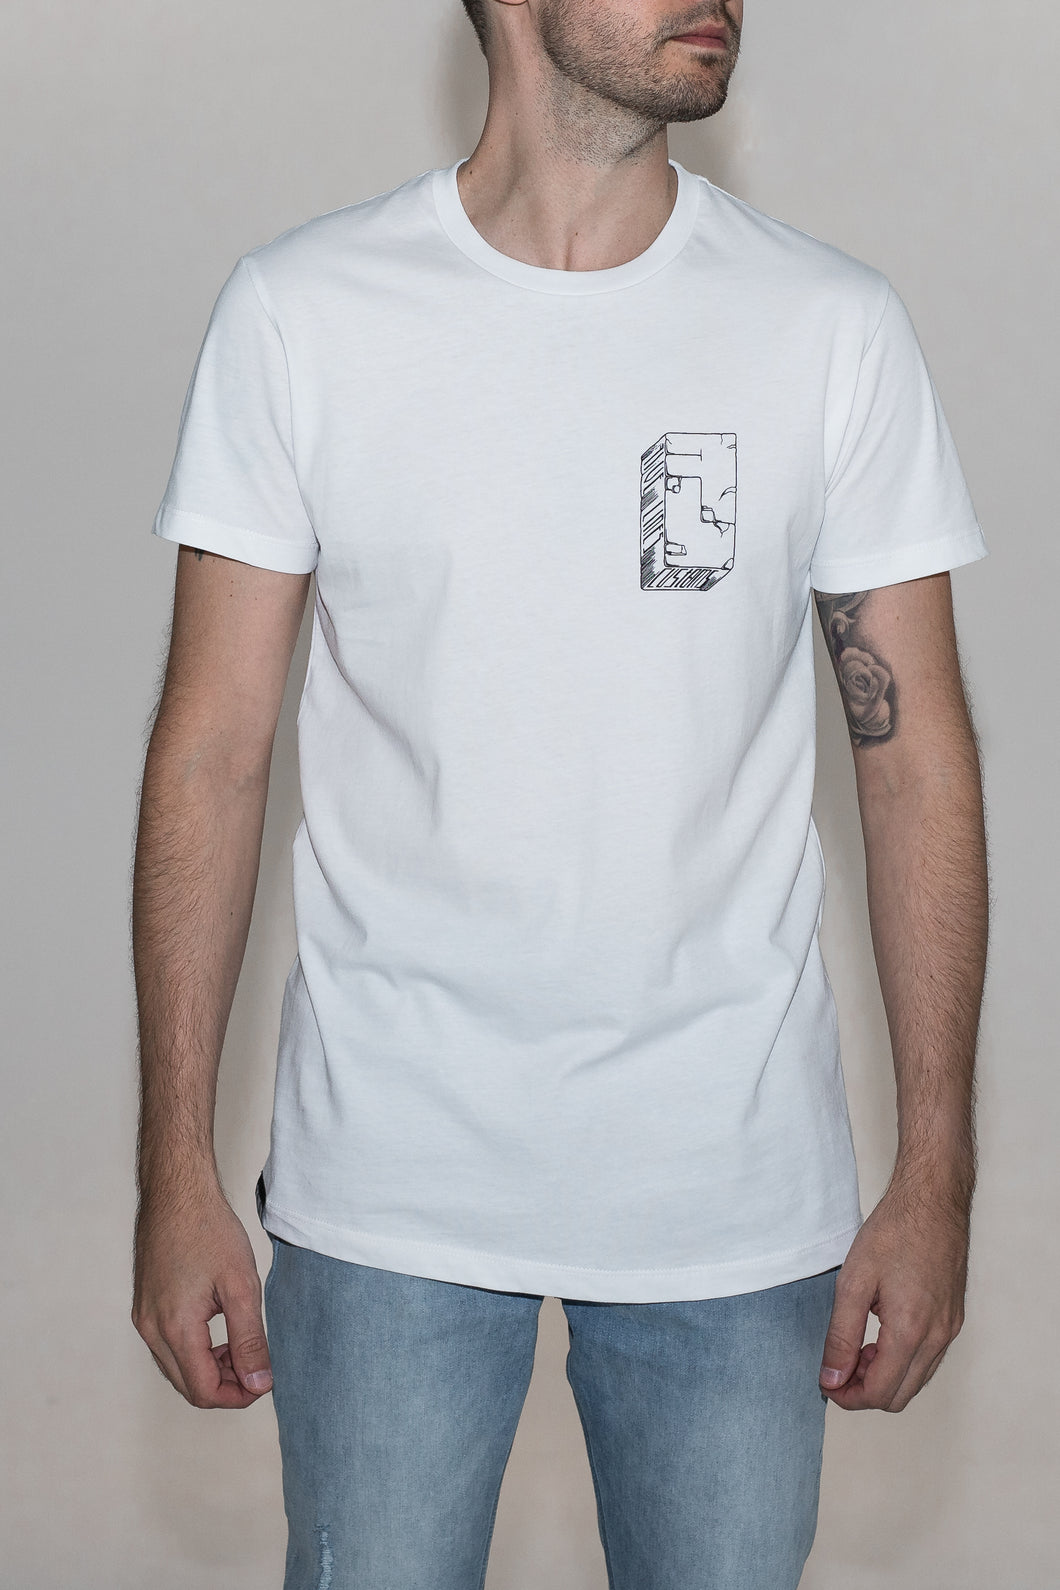 Five Lines 'Rock Solid' T-Shirt - White (Slim-Regular Fit)